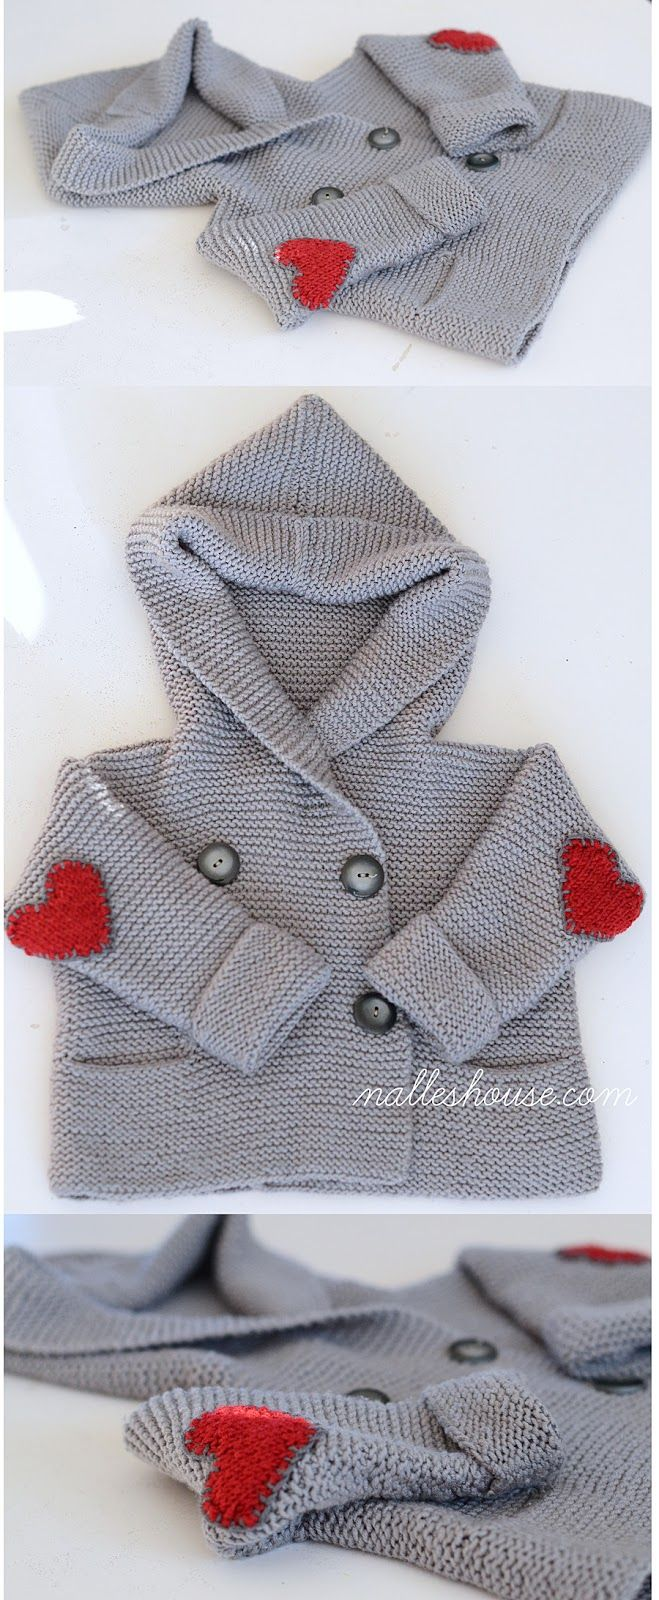 Nalle's House: He Wears His Heart on His Sleeve (sweater pattern link to buy and free knit heart pattern)